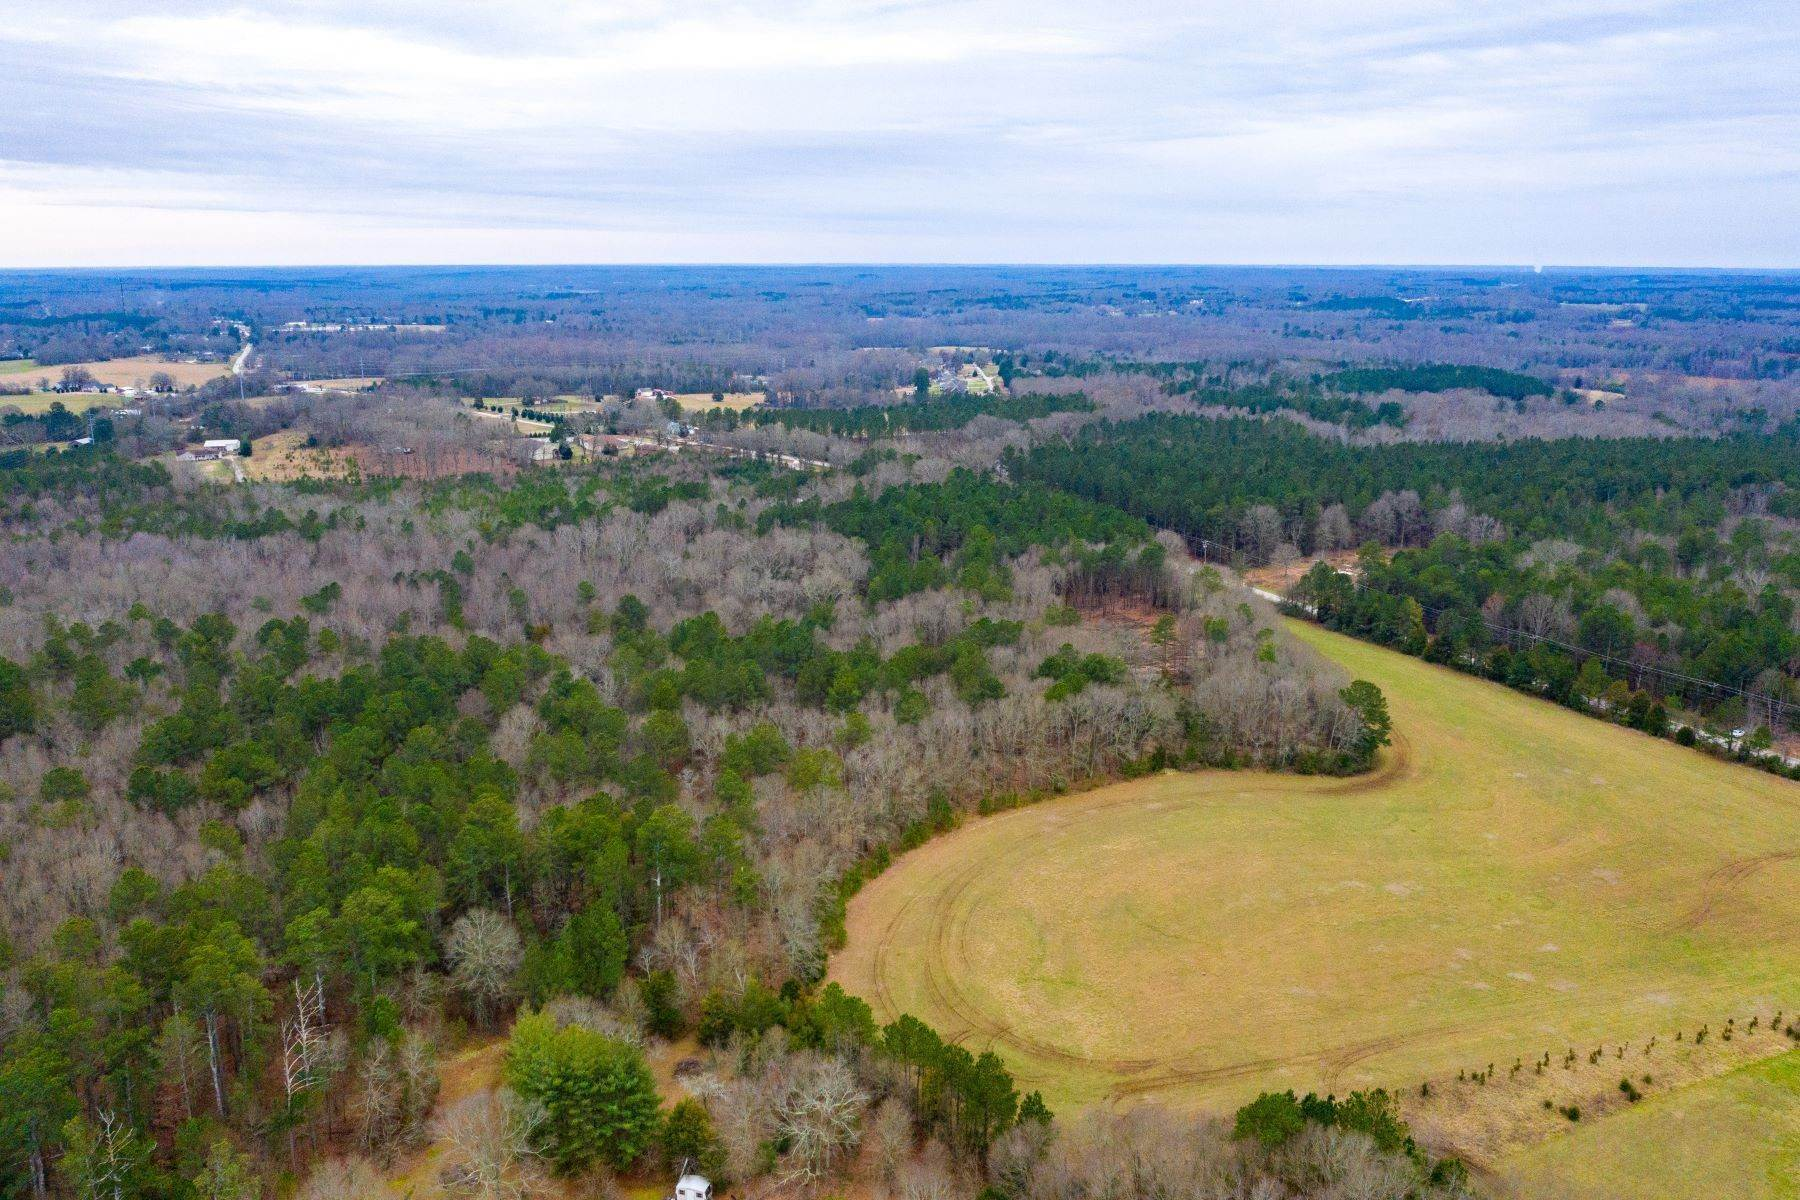 5. Land for Sale at 2511 Fork Shoals Road, Piedmont, SC 29673 Piedmont, SC 29673